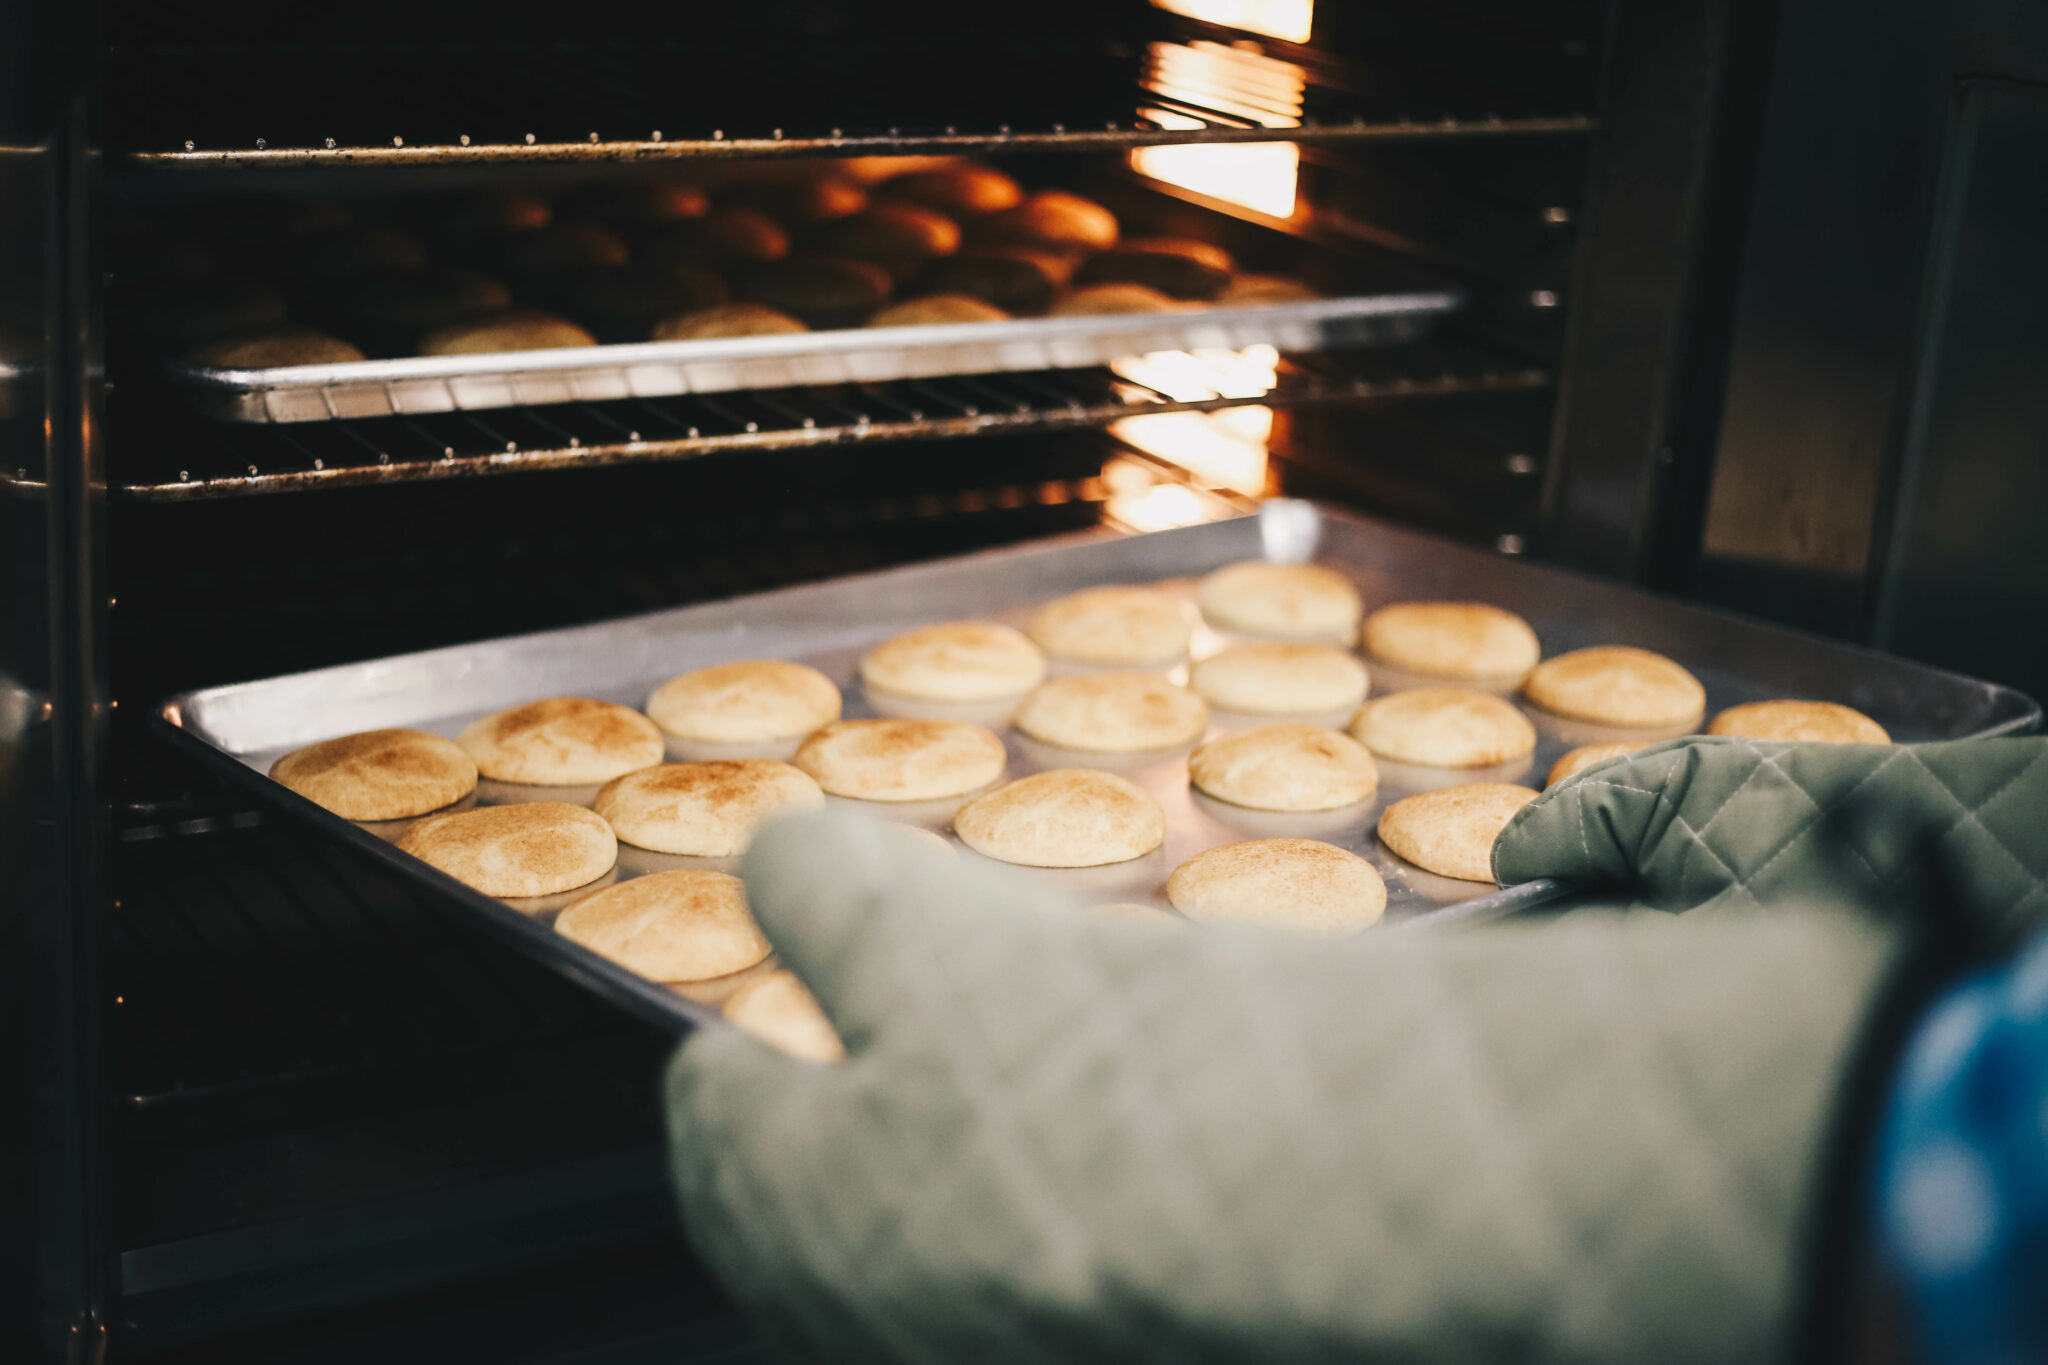 Cookies coming out of the oven